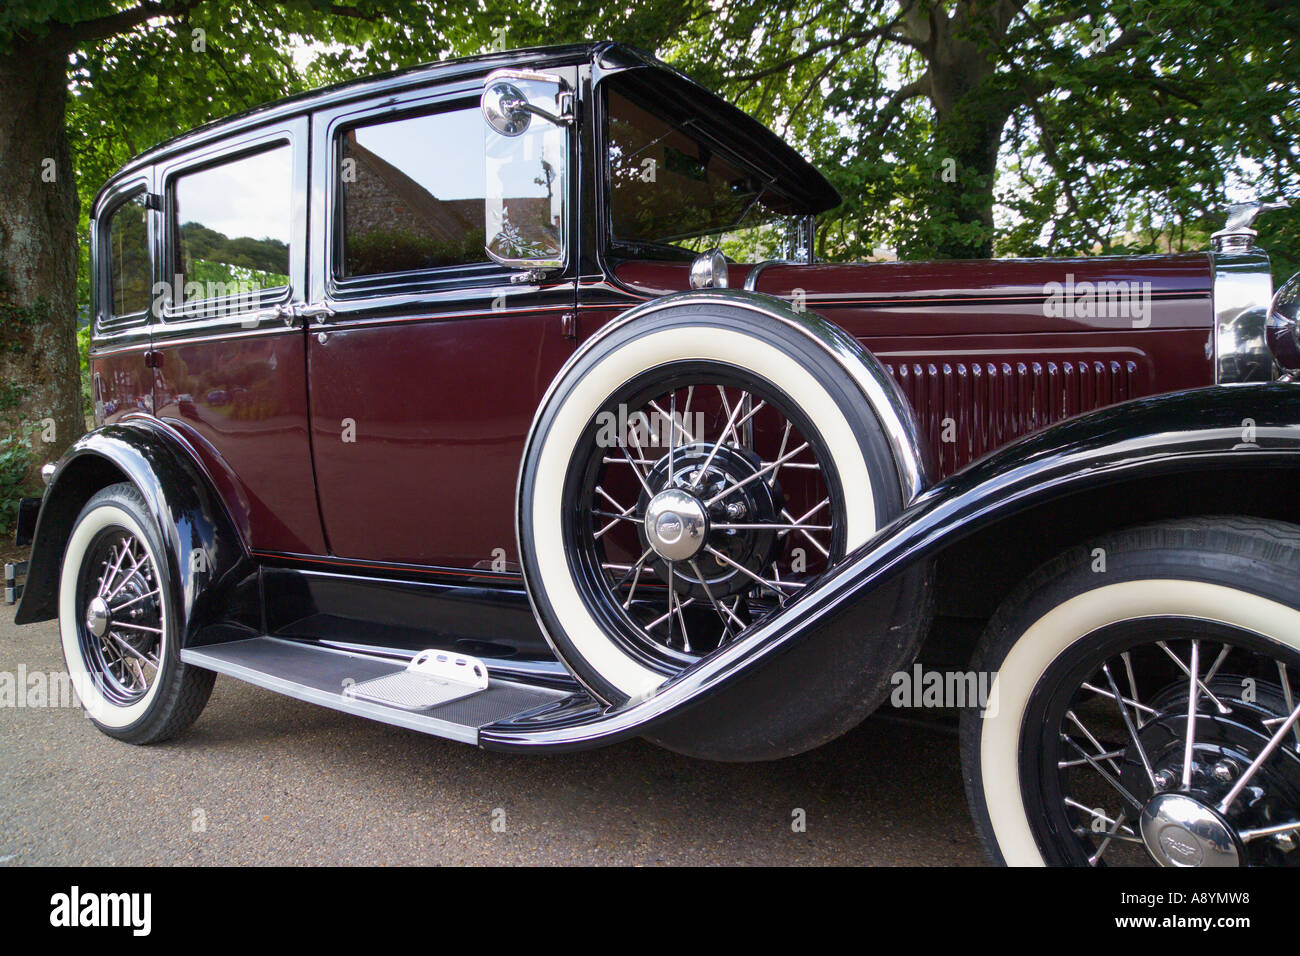 Ford A Classic Car Stock Photo Royalty Free Image - Classic car 1930